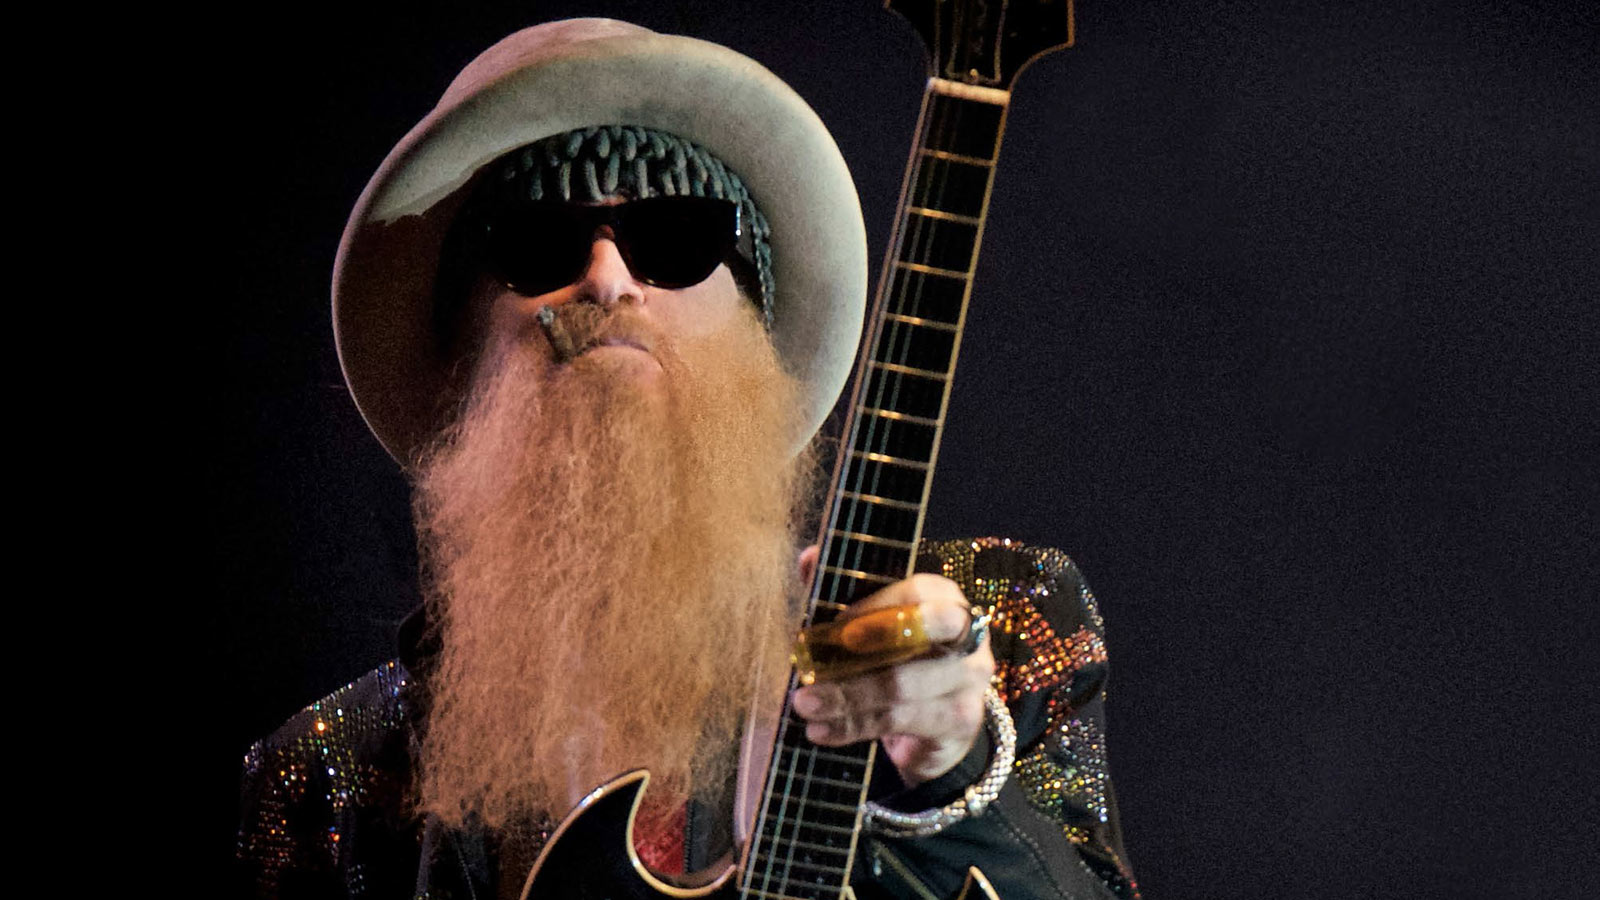 zz top legend billy